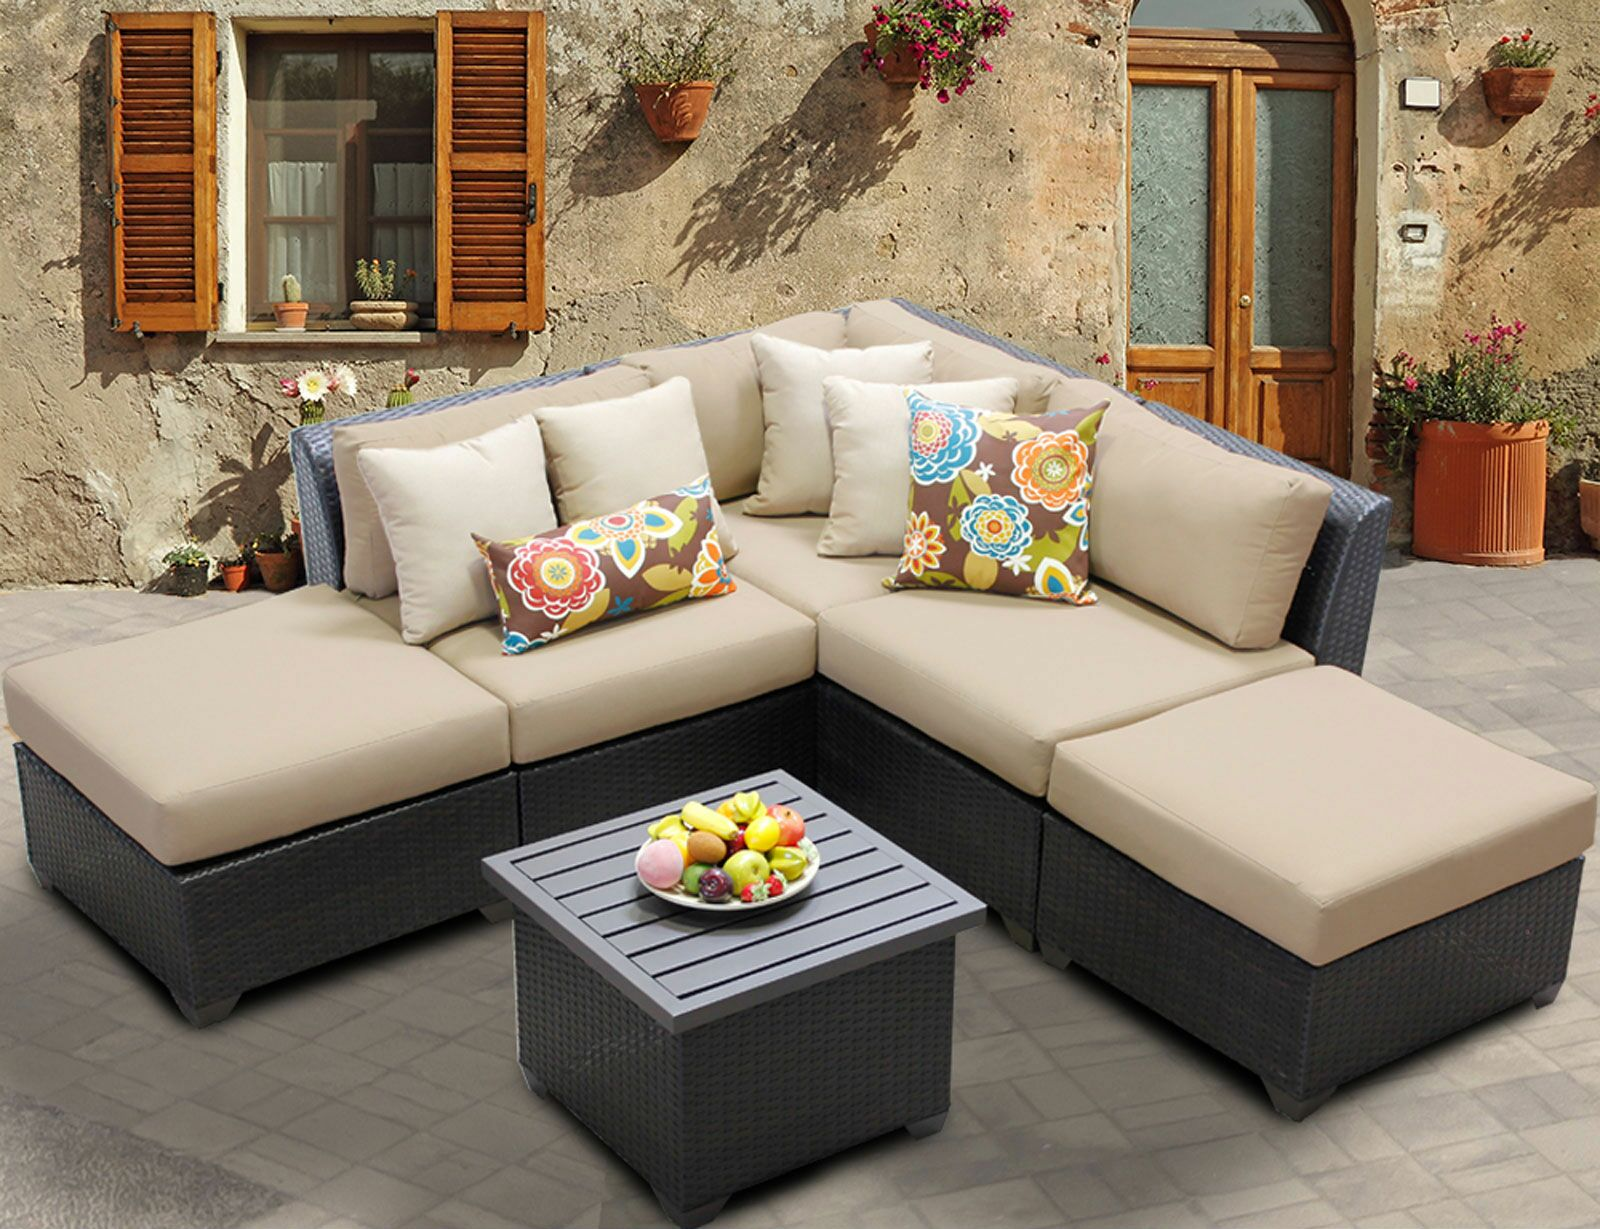 Barbados 6 Piece Rattan Sectional Set with Cushions Color: Wheat